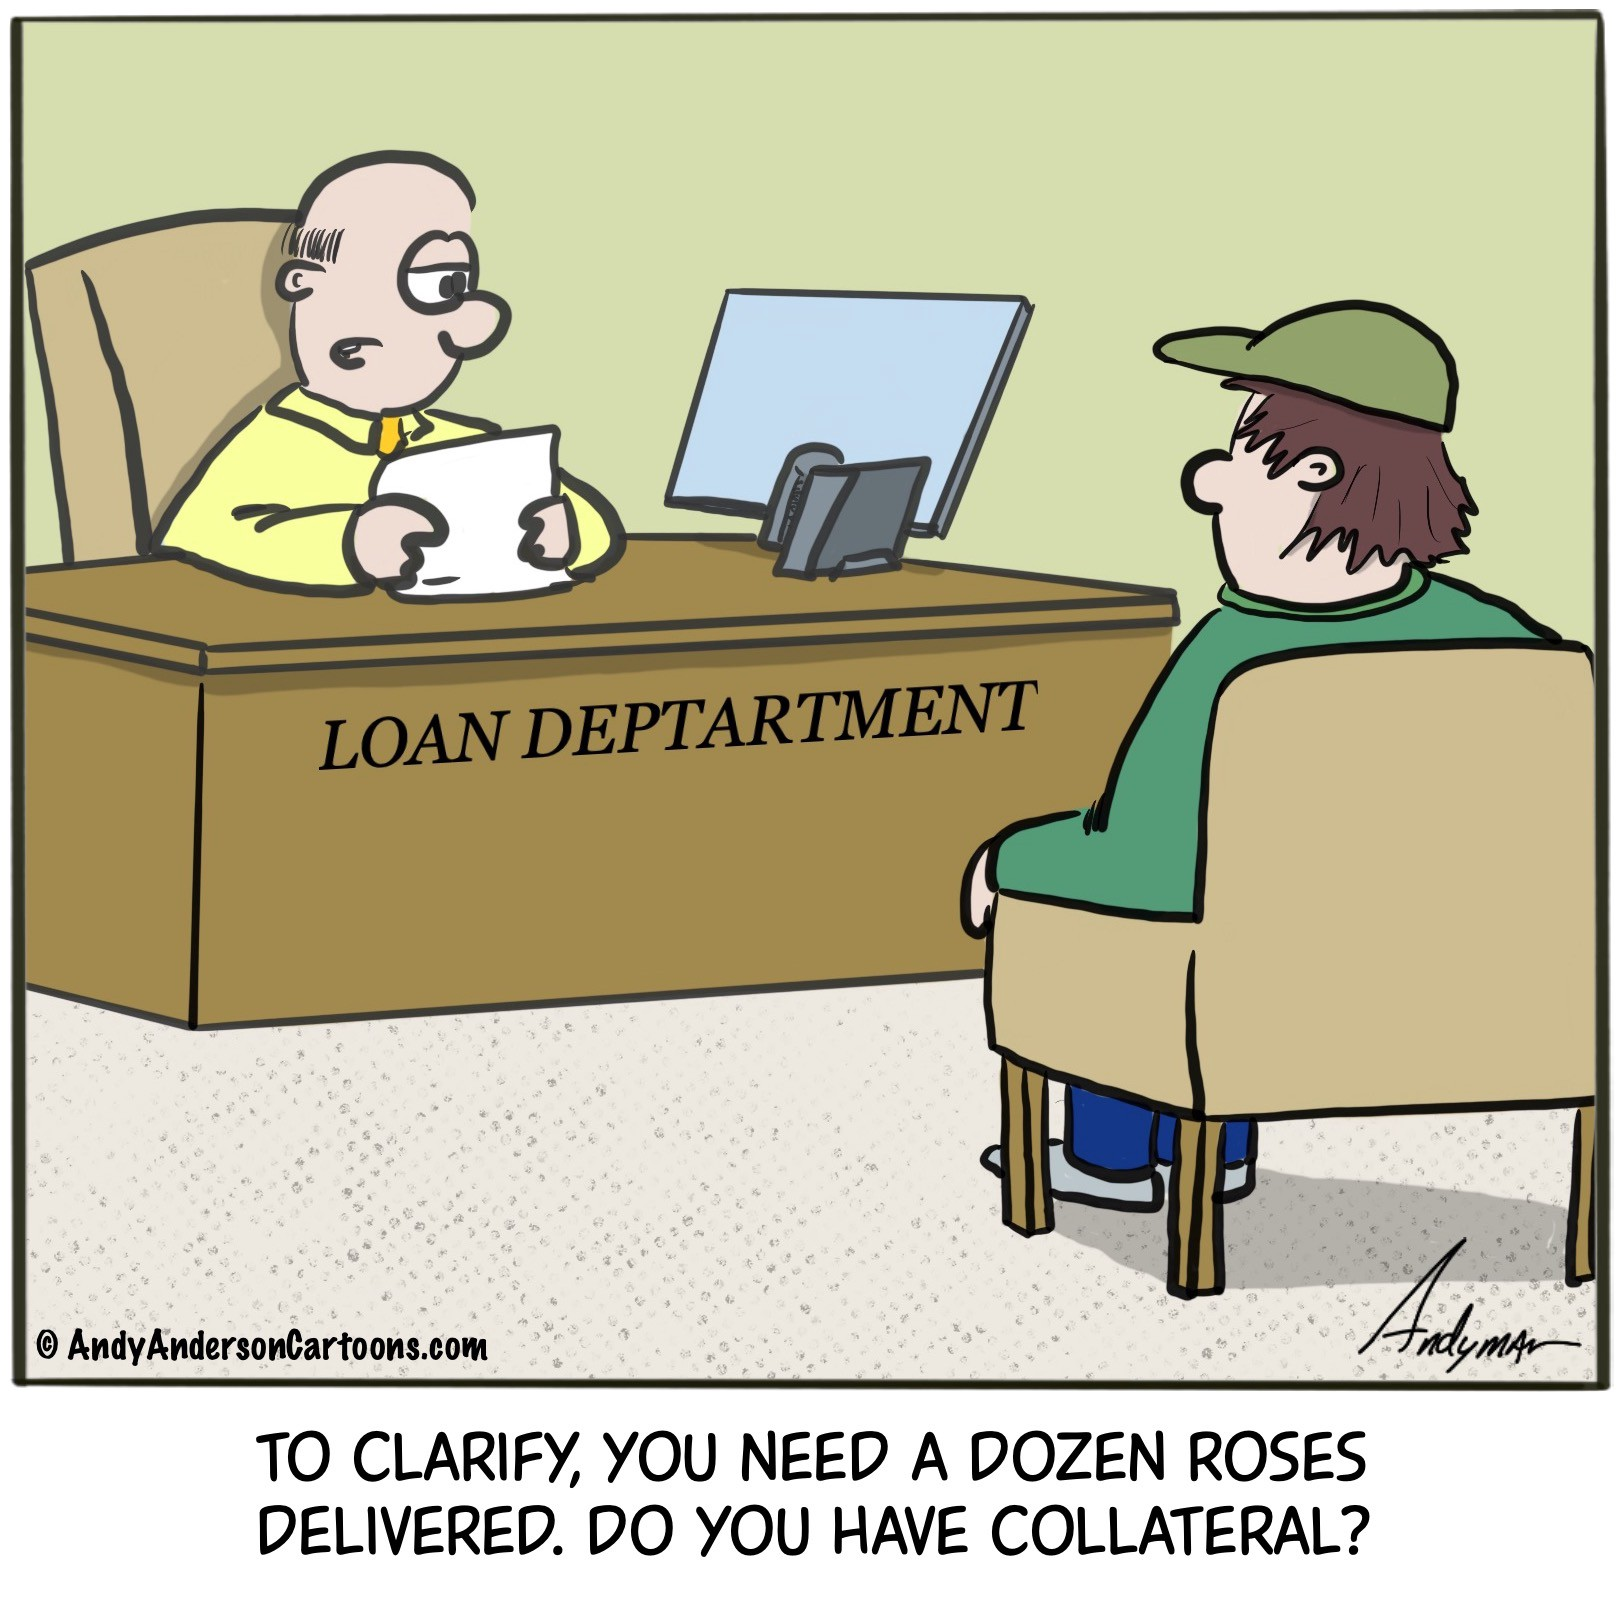 Cartoon about a guy getting a loan to pay for roses for Valentines Day delivery by Andy Anderson